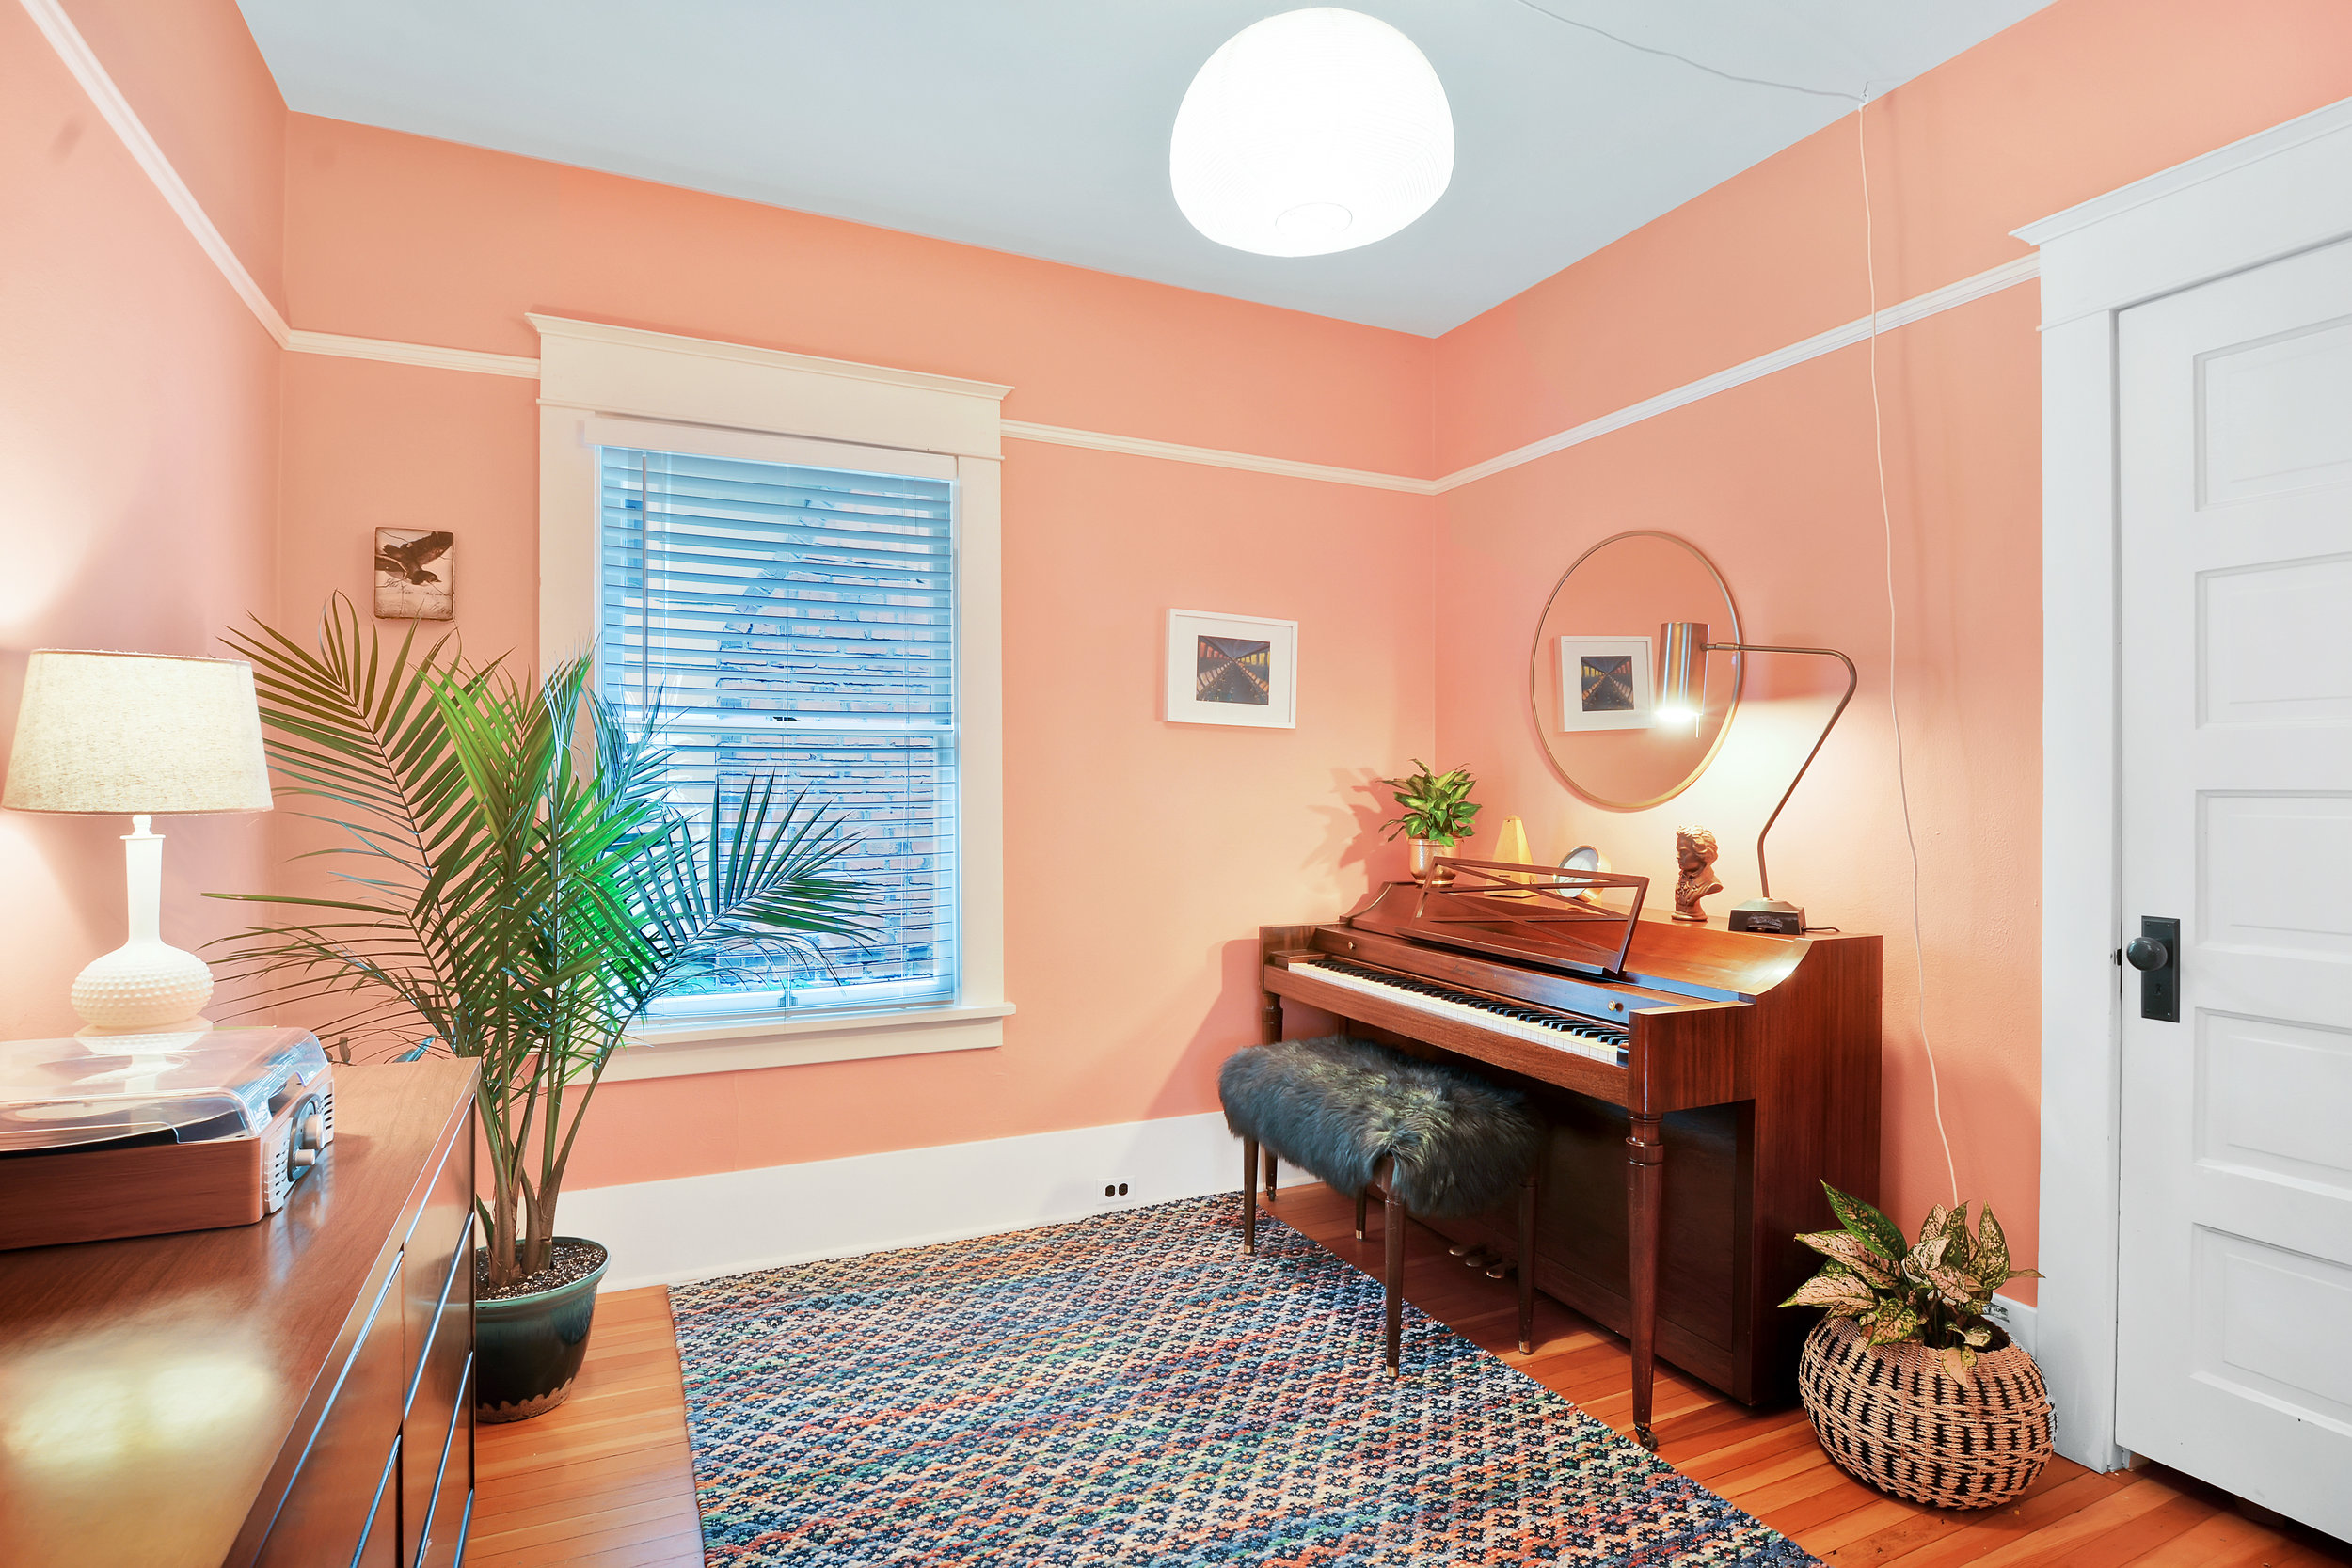 One of three main floor bedrooms, currently used as a cozy music room.